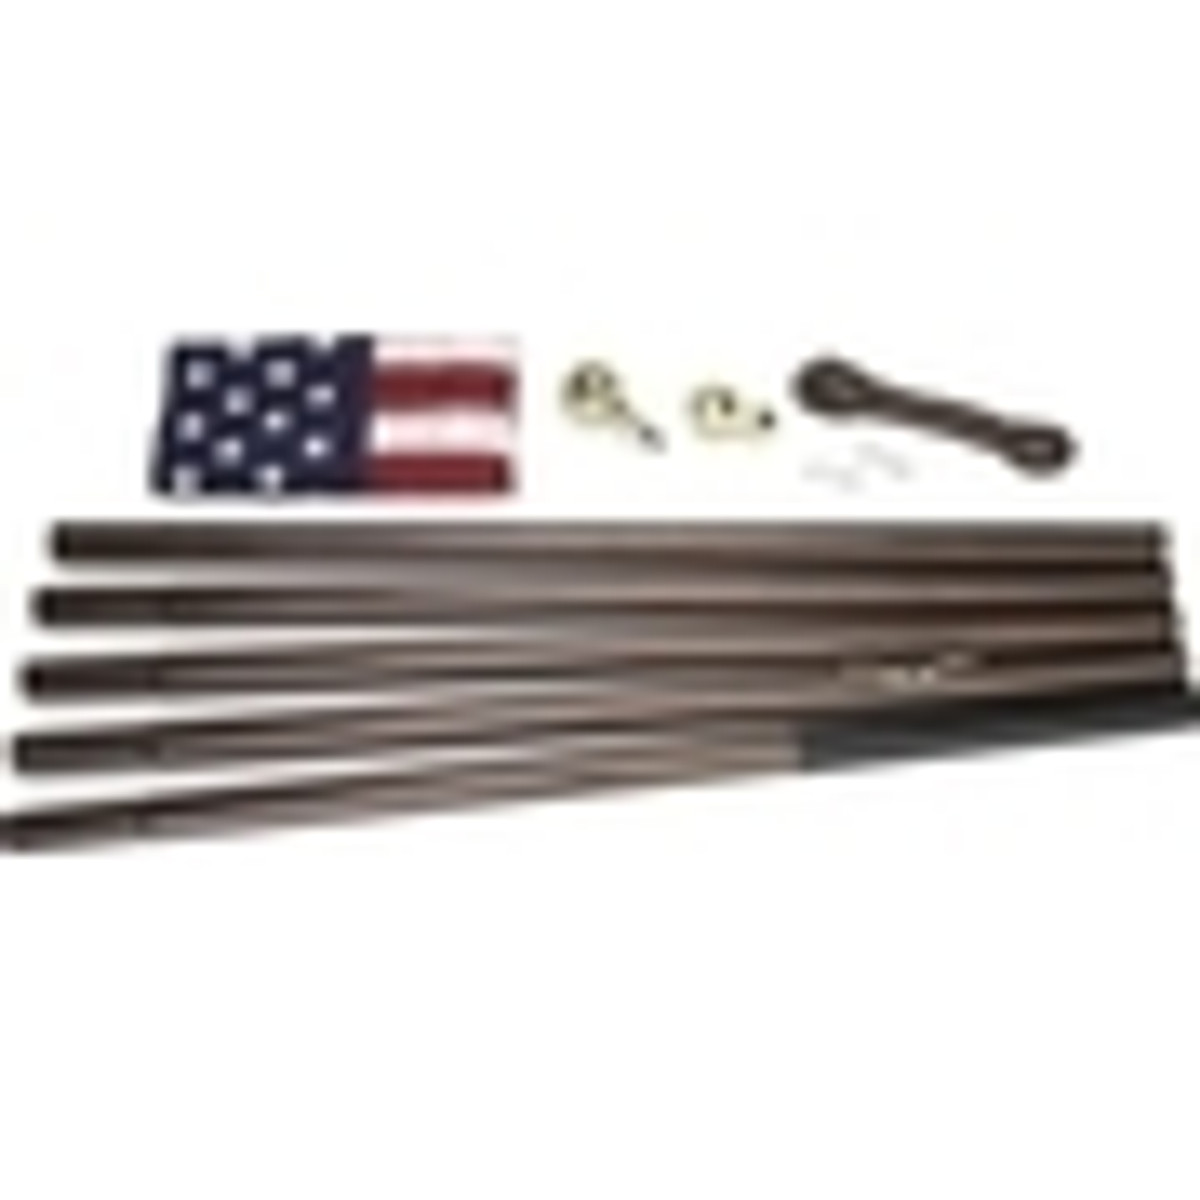 Residential Poles - Made in the USA